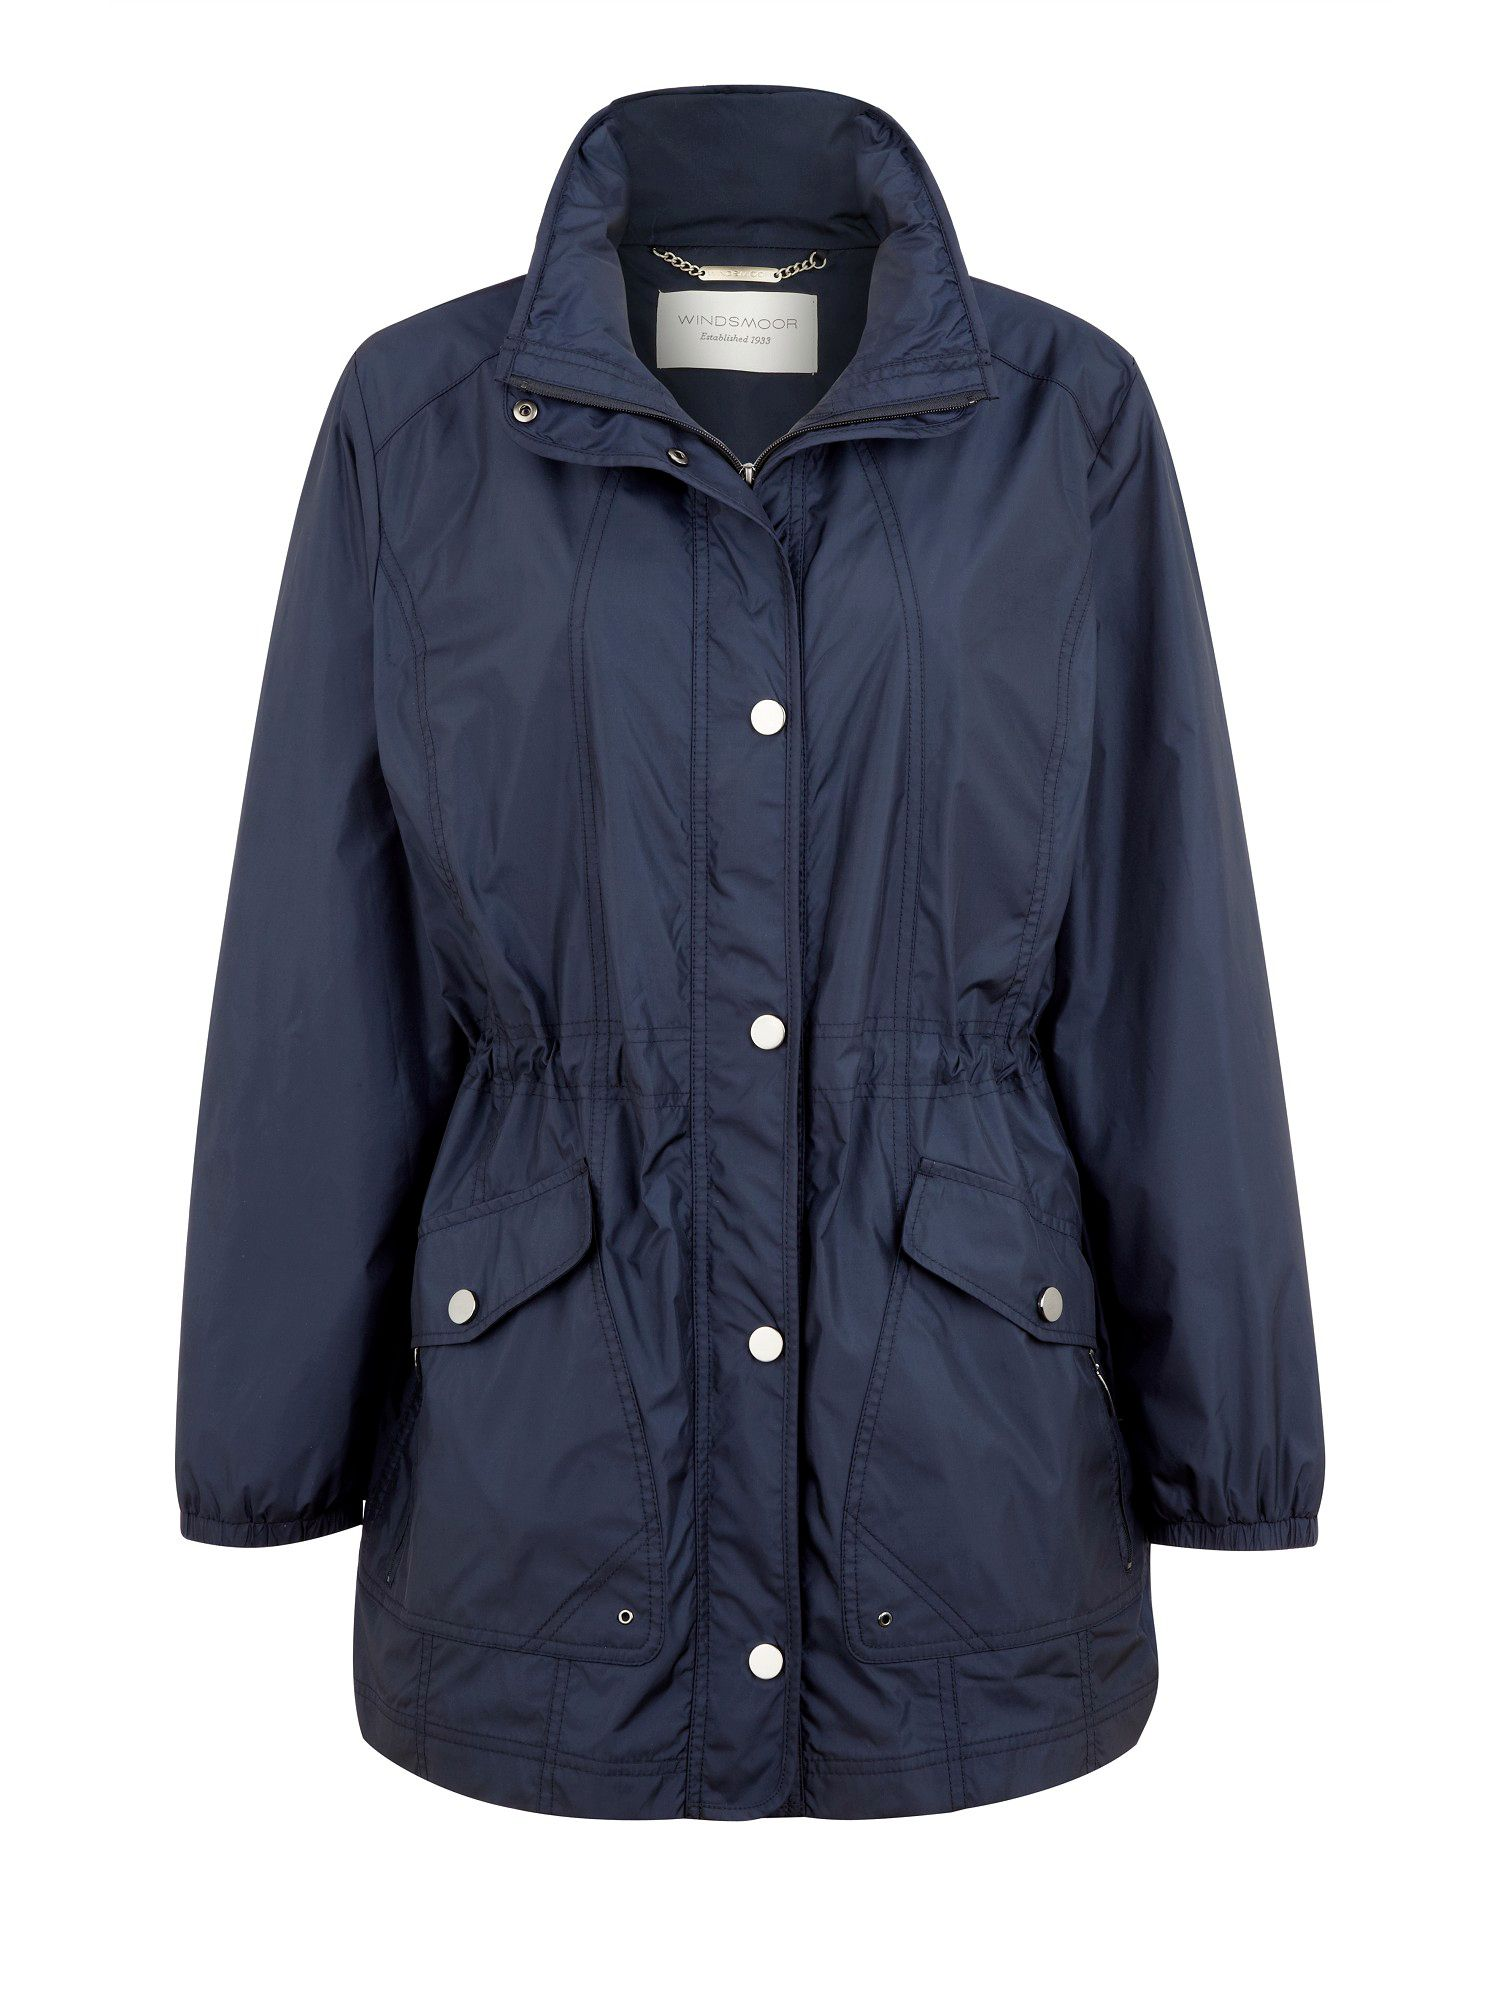 Wrong image - navy raincoat